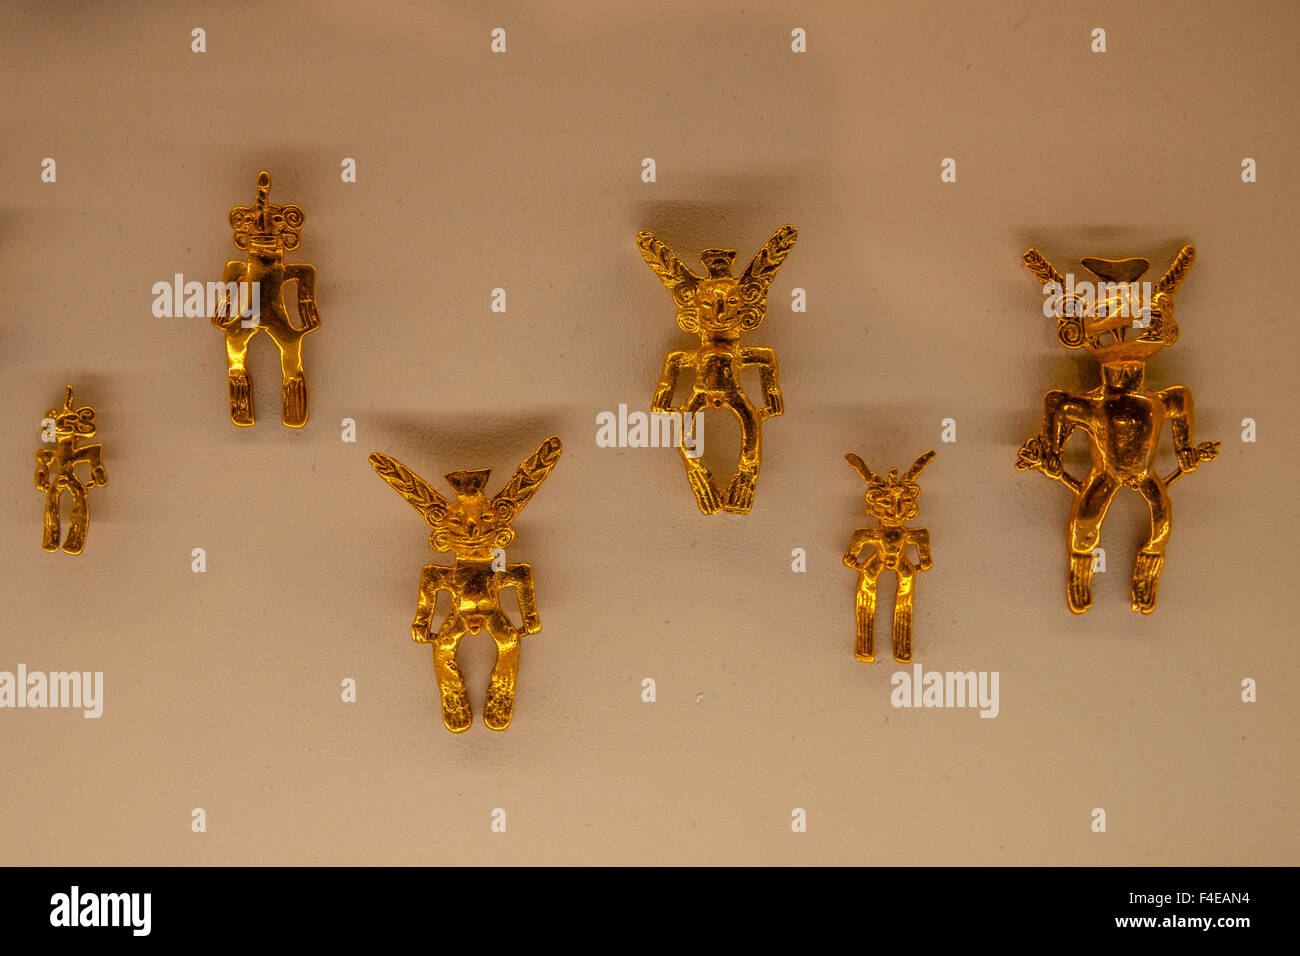 Pre columbian gold pendants old traditional pieces dating back to pre columbian gold pendants old traditional pieces dating back to stock photo 88826224 alamy mozeypictures Gallery